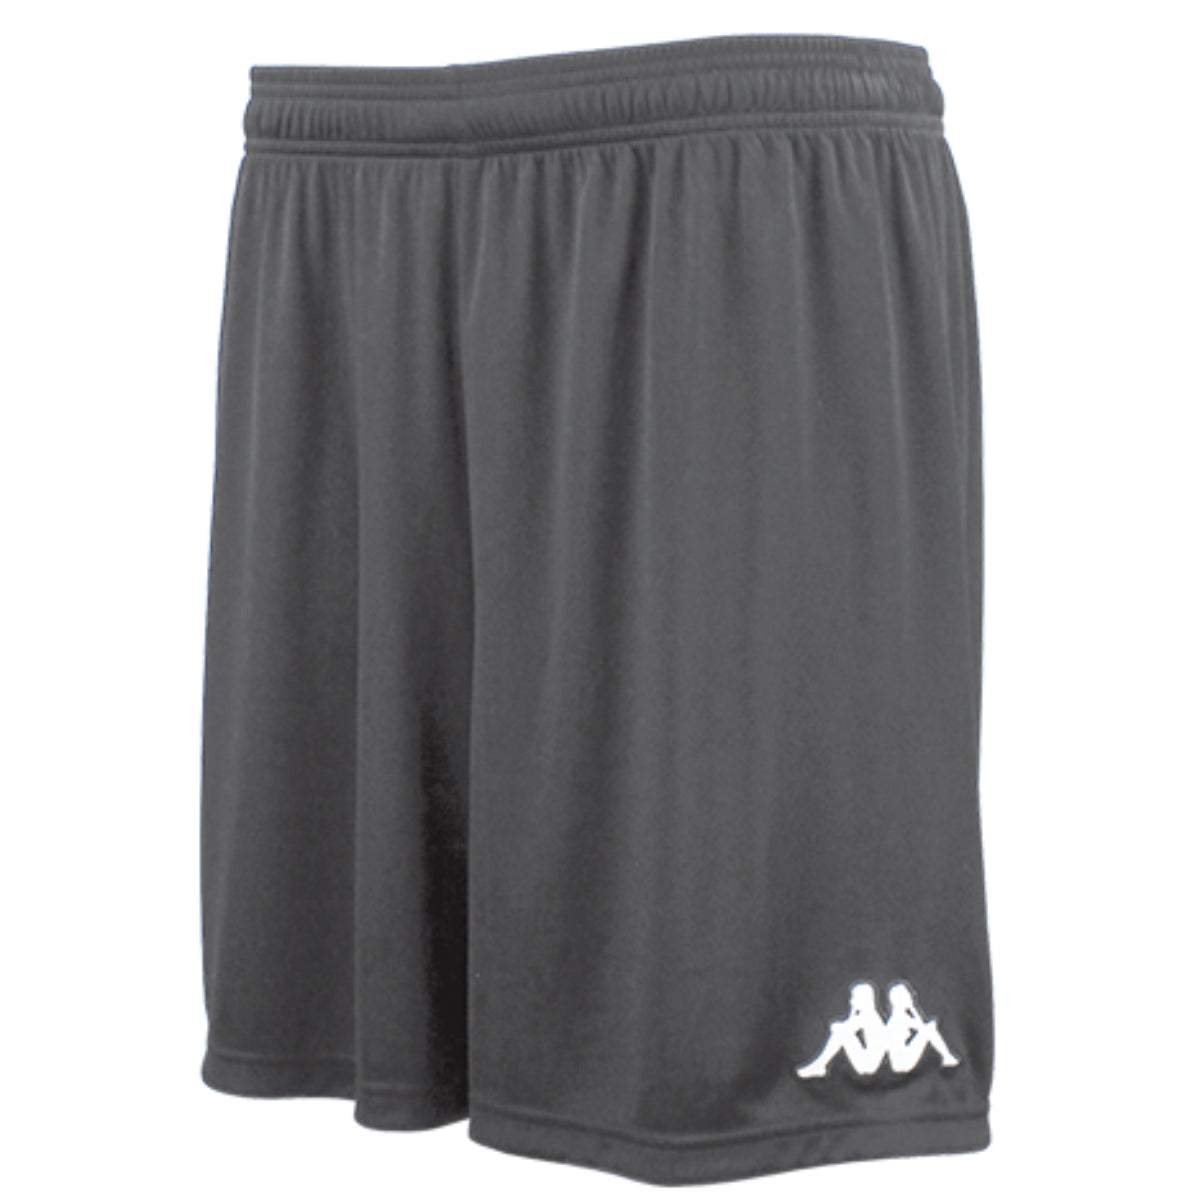 Kappa Vareso match short in smoke (grey) with white embroidered Omini on the left leg.